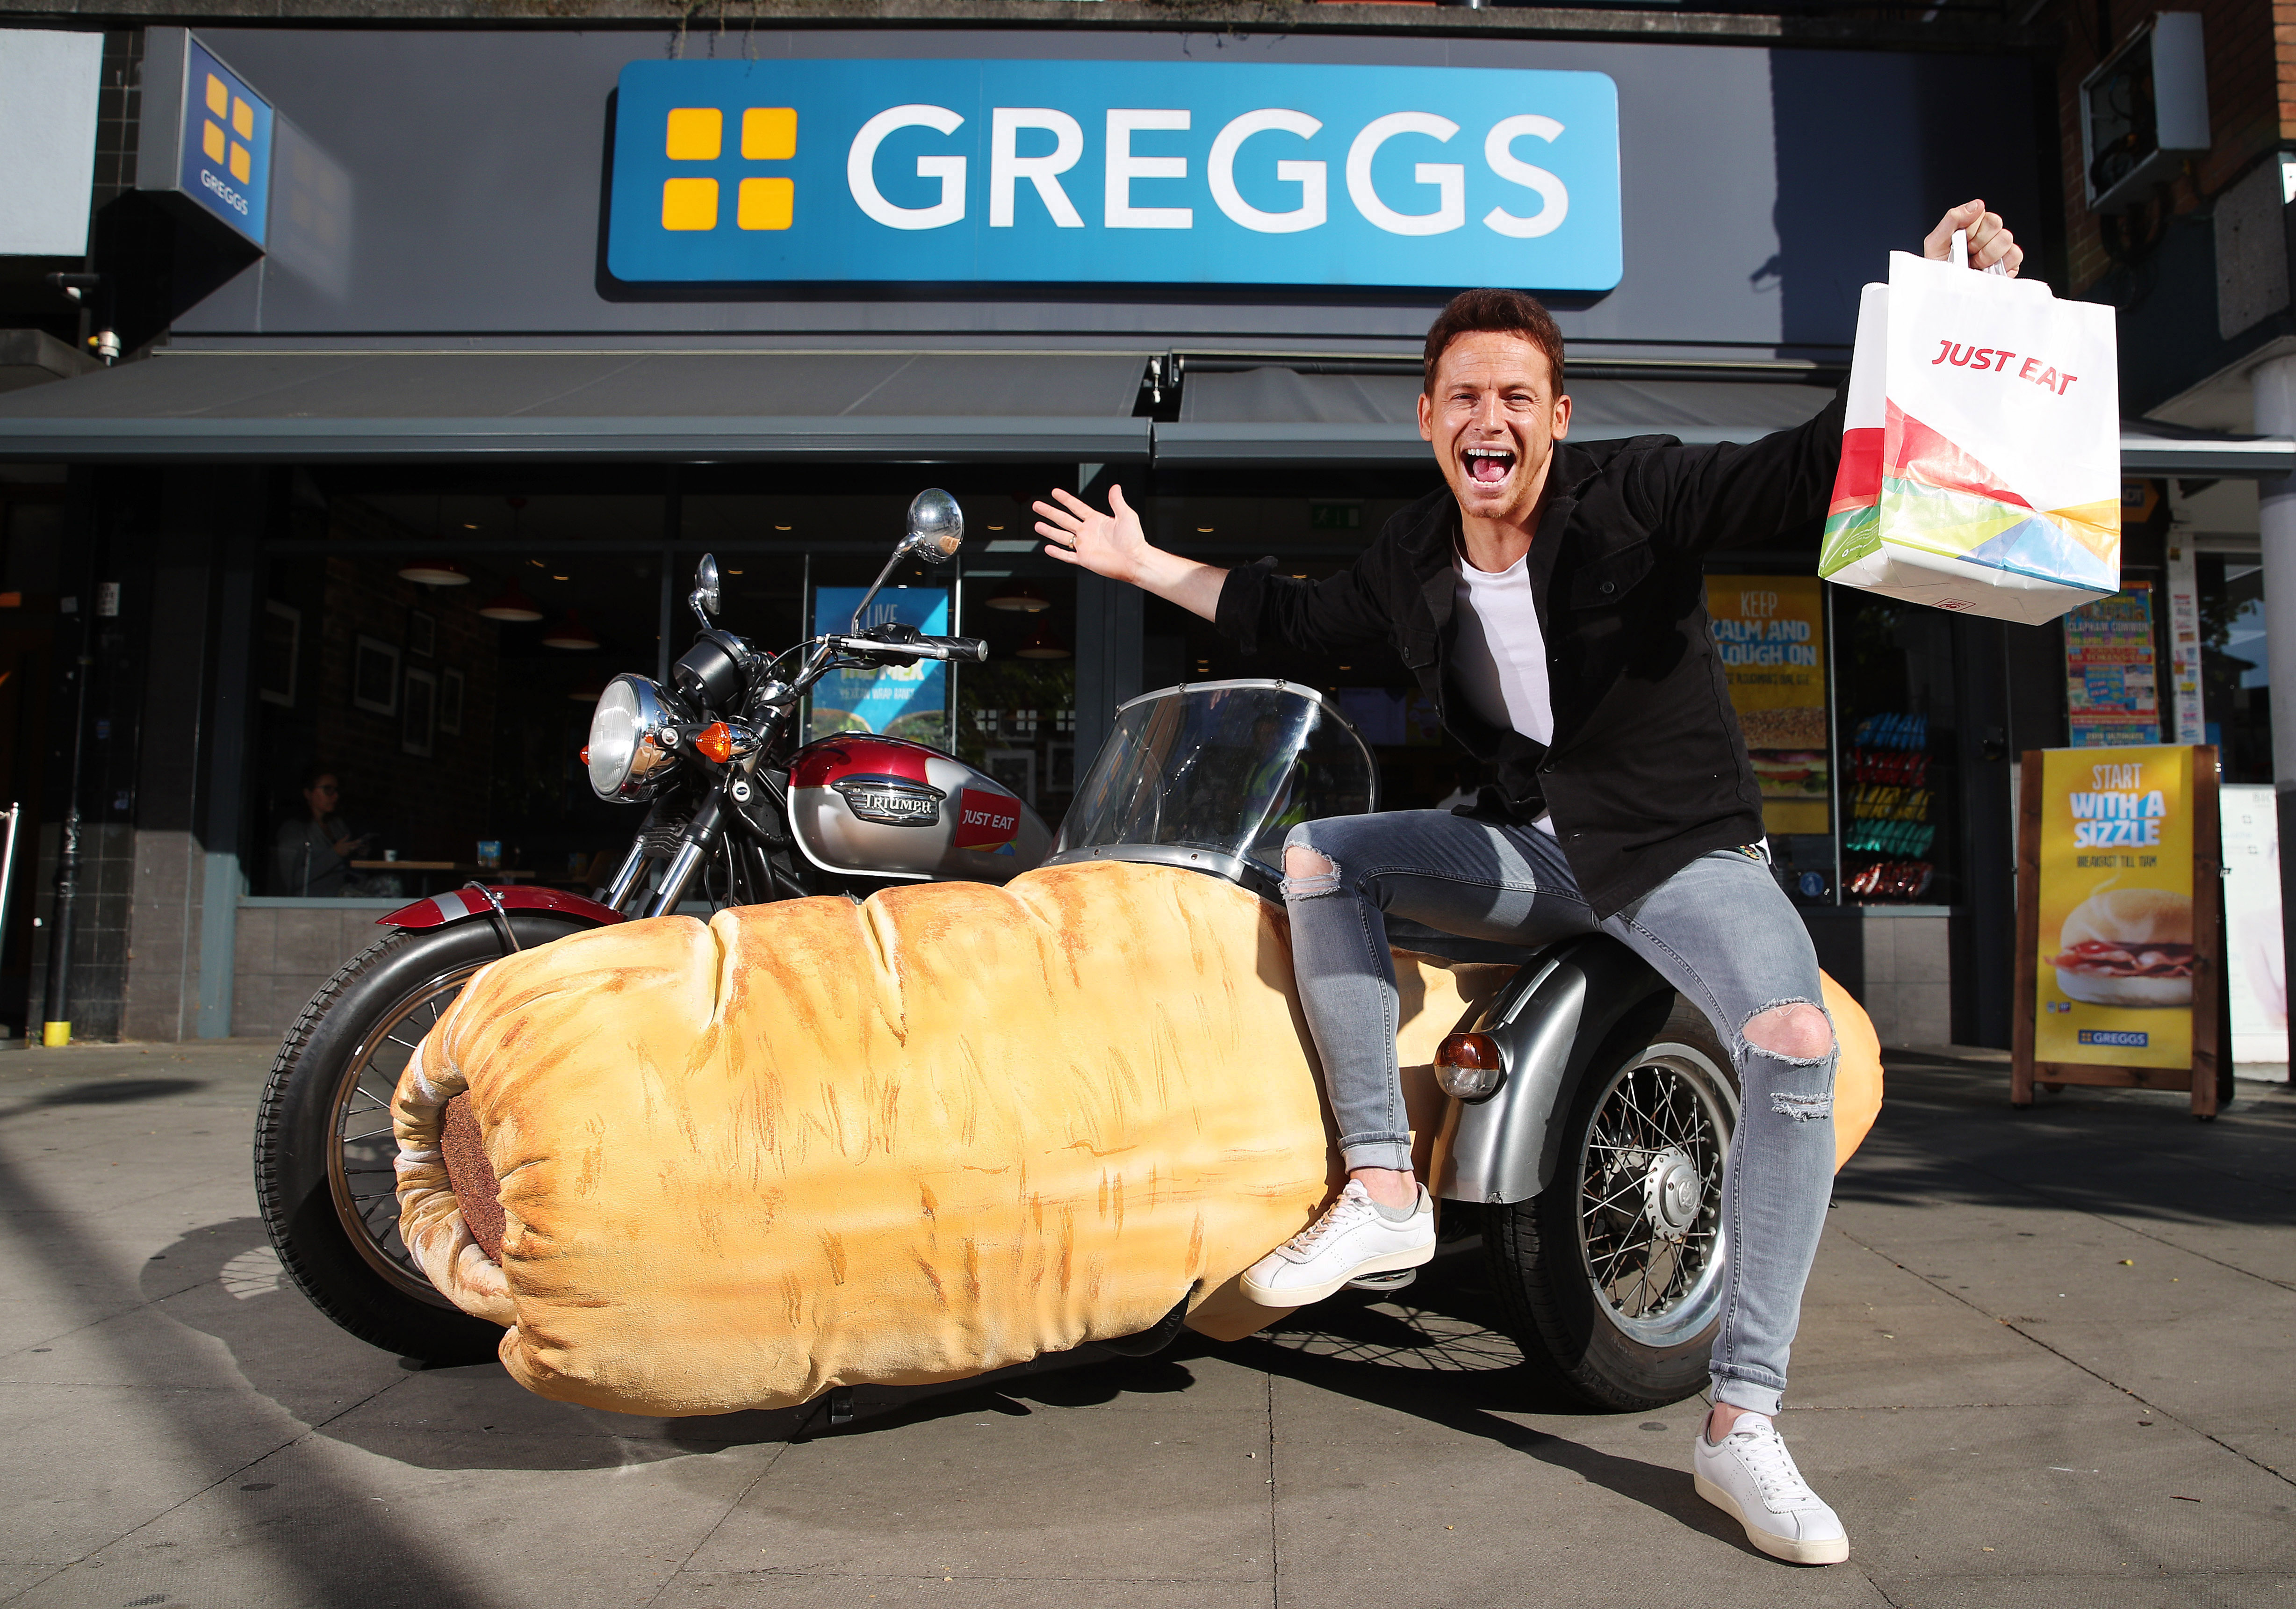 Joe Swash is delighted with the new partnership between Greggs and Just Eat. Credit: Taylor Herring